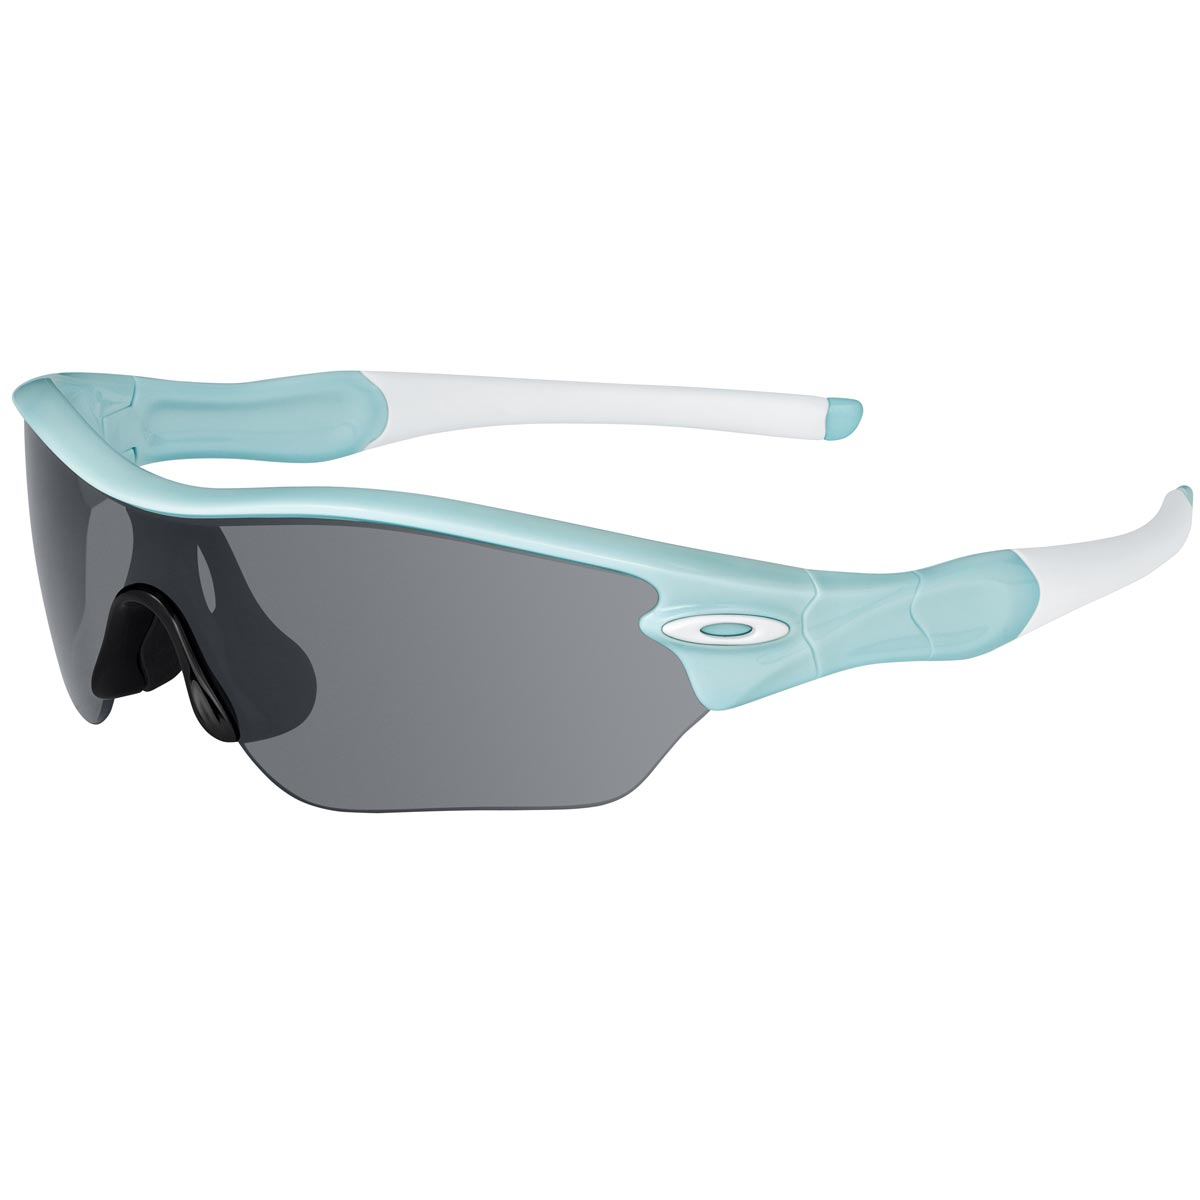 kusgk white and baby blue oakley sunglasses | Global Business Forum - IITBAA